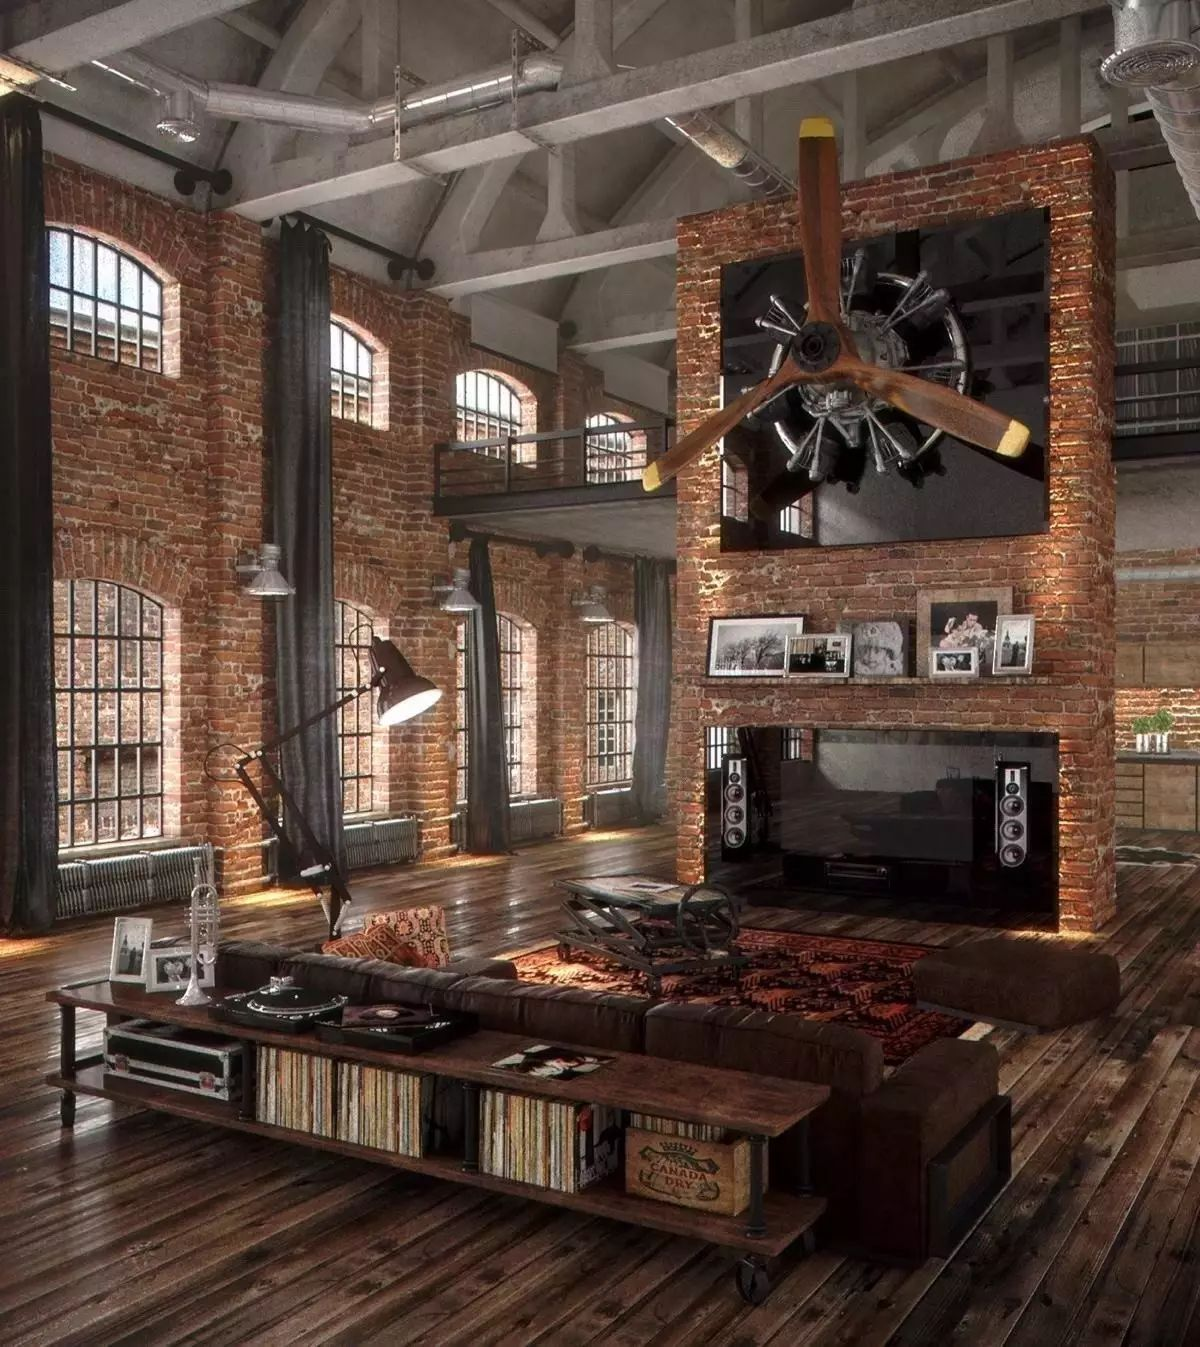 industrial lofts industrial lofts What's Hot On Pinterest Industrial Lofts Are Here! Whats Hot On Pinterest Industrial Lofts Are Here2